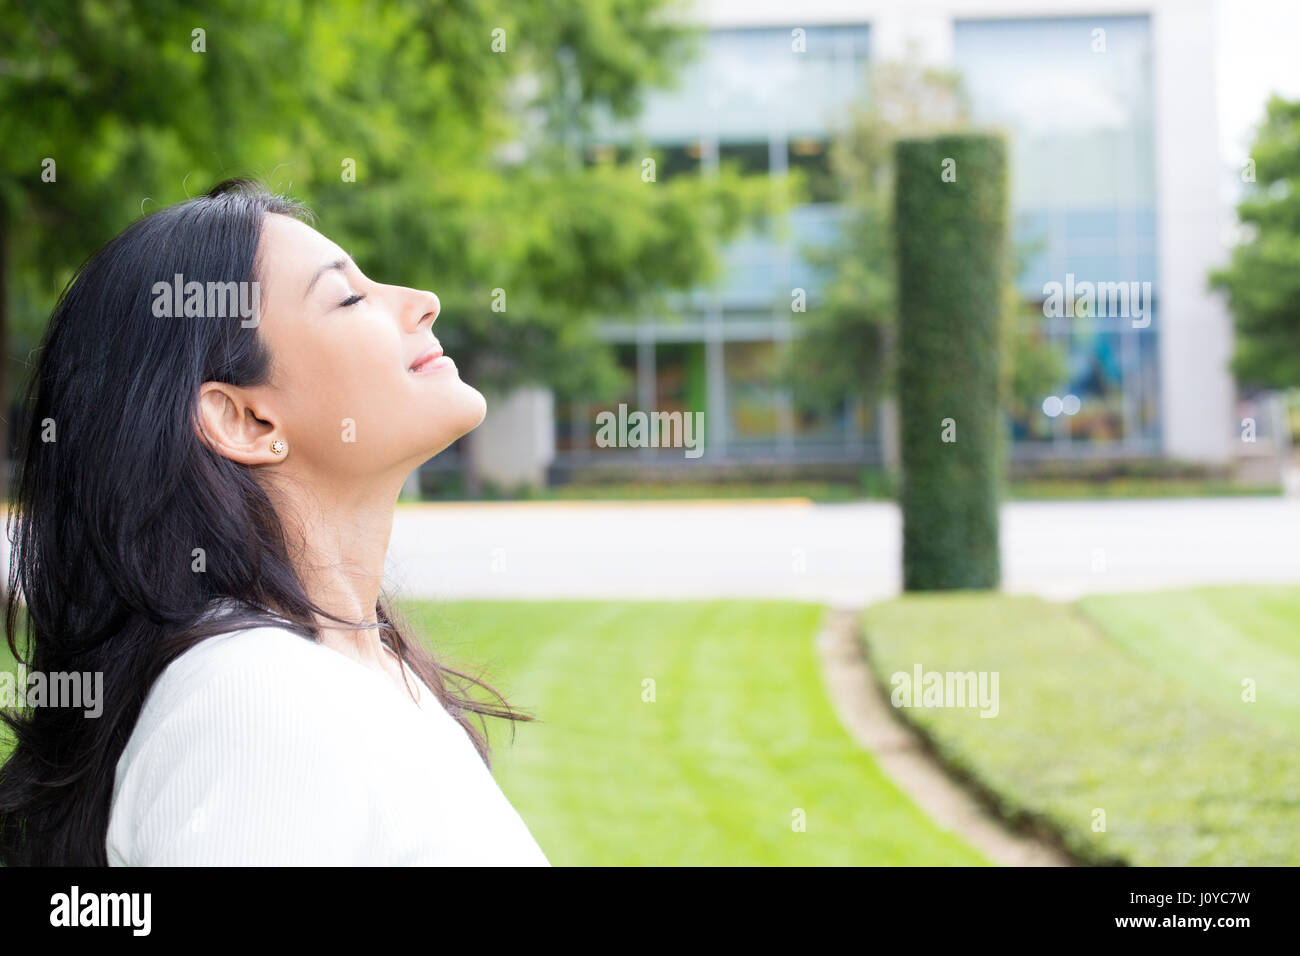 Closeup portrait, young woman in white shirt breathing in fresh crisp air after long day of work, isolated outdoors - Stock Image